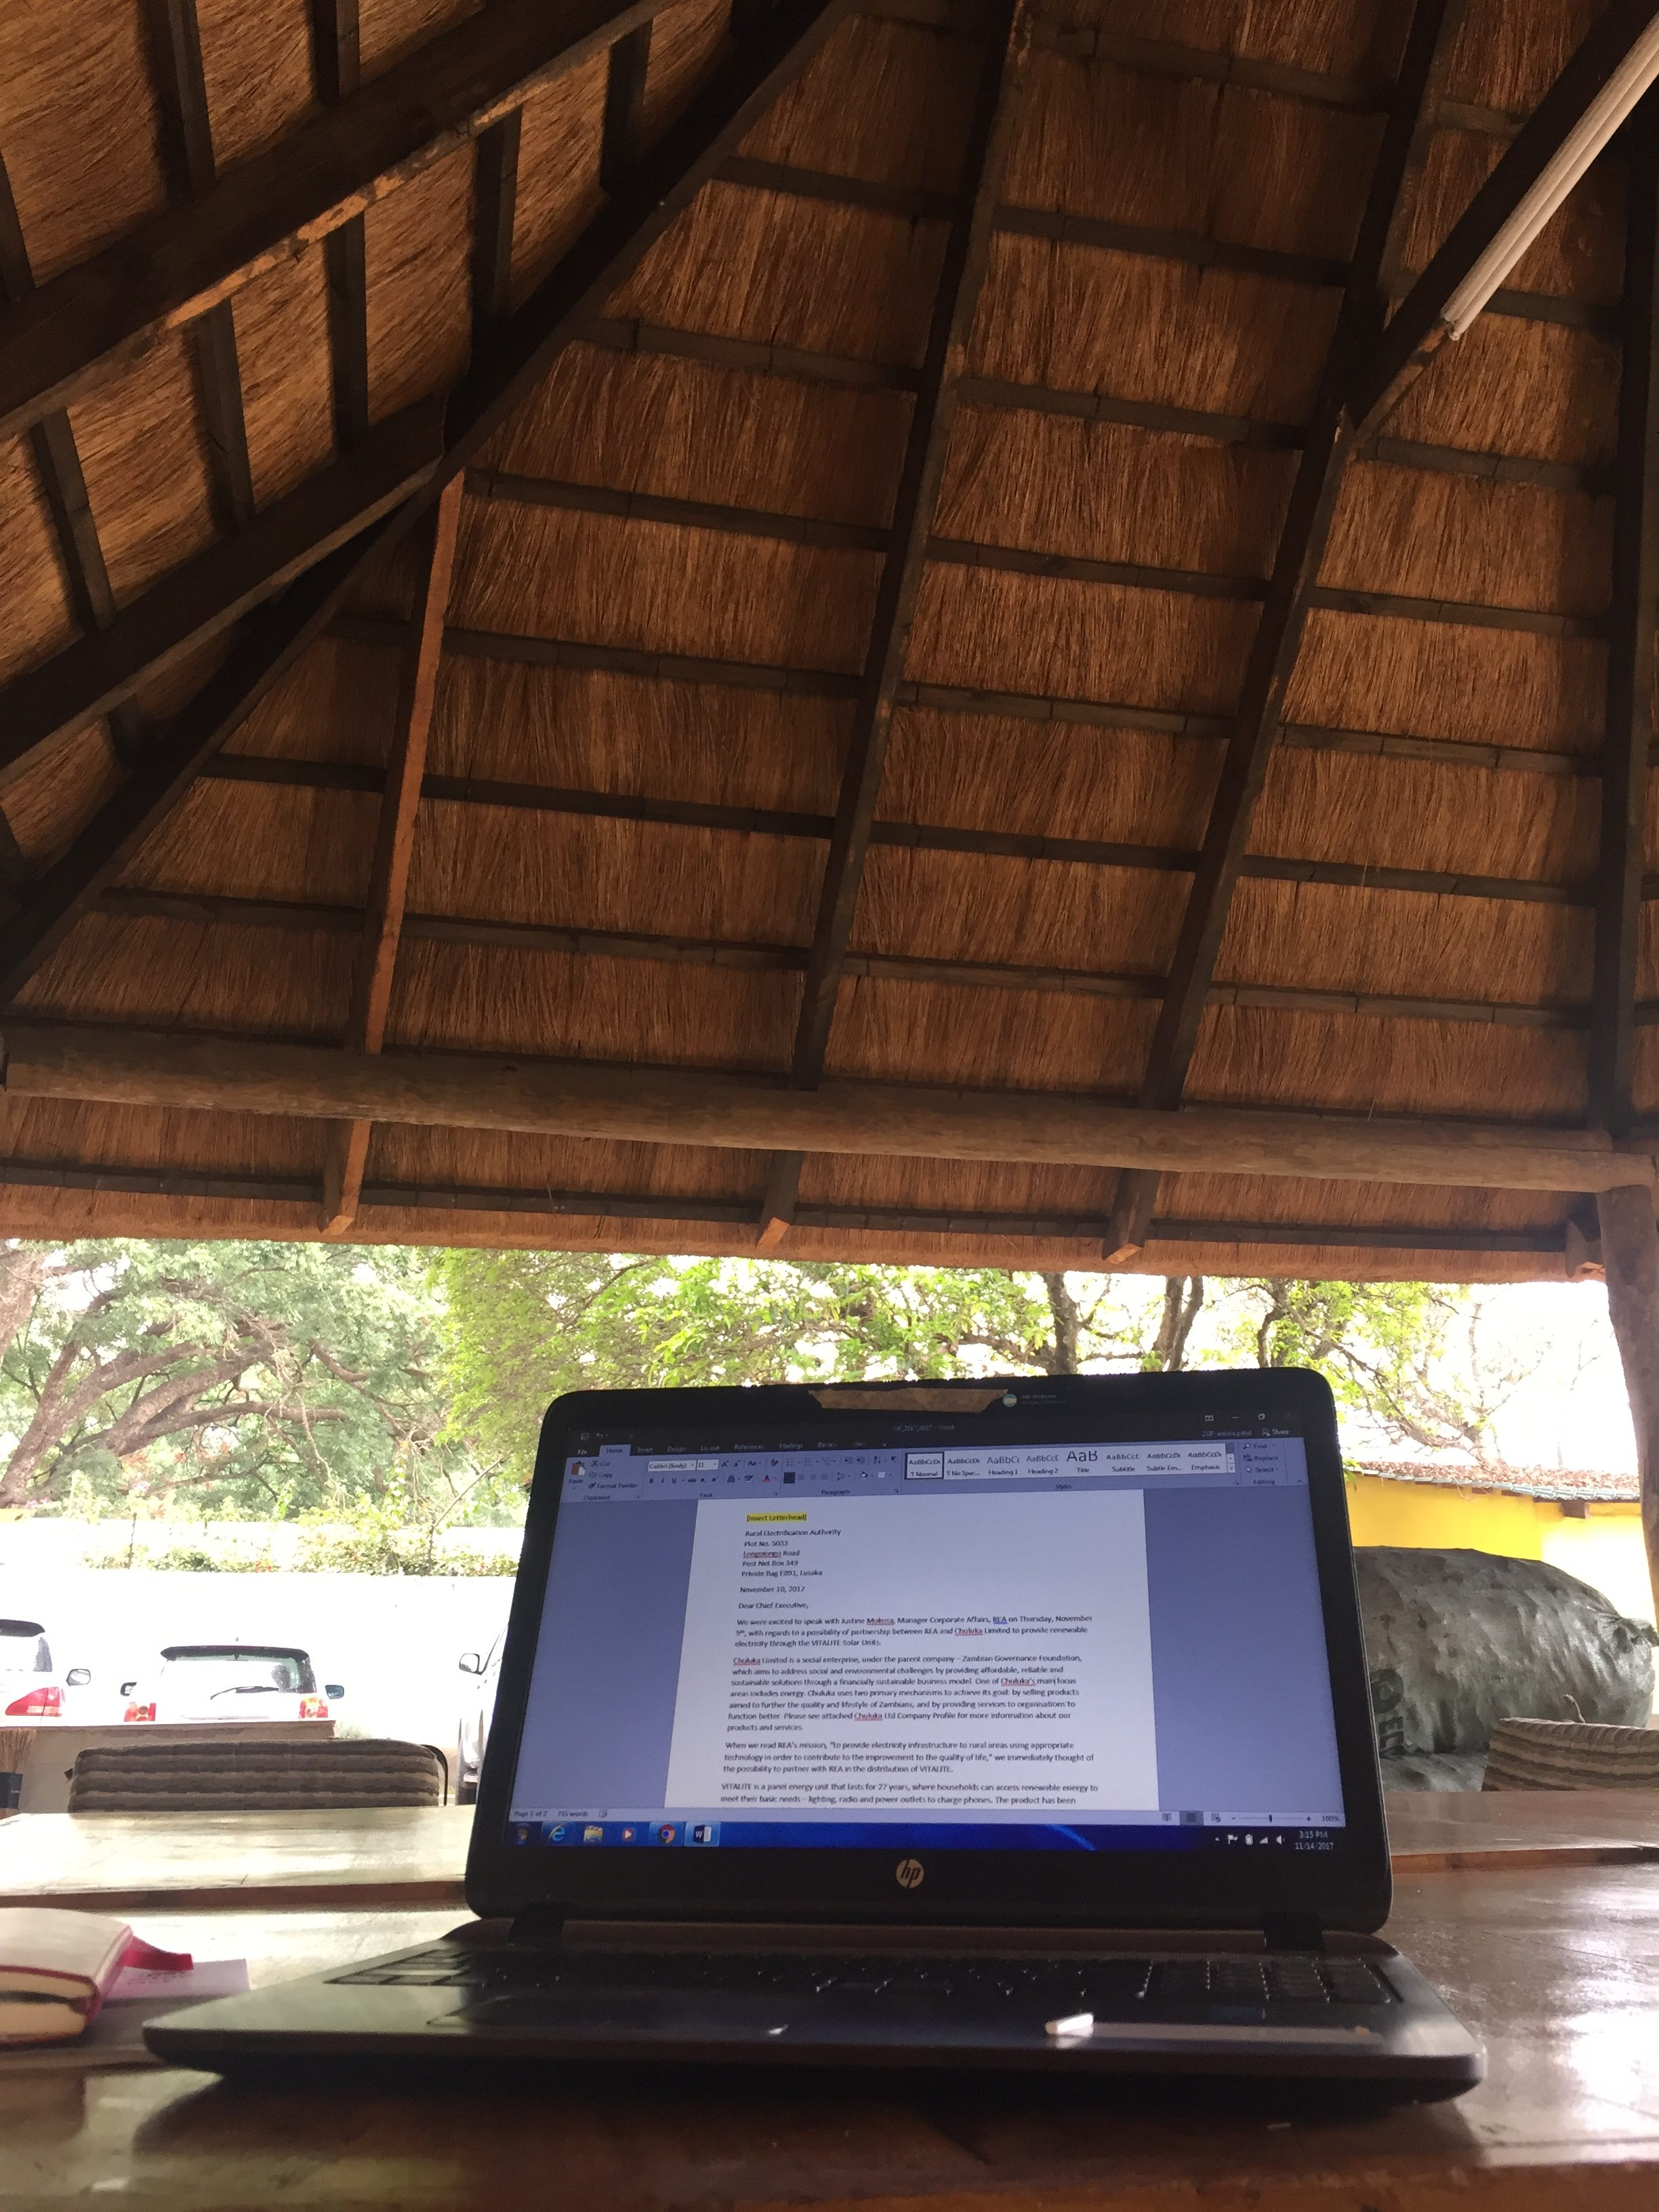 Sometimes in the afternoon, Ankita went outside and worked in a hut (even though they had fantastic offices). It reminded her of having class outdoors in primary school.